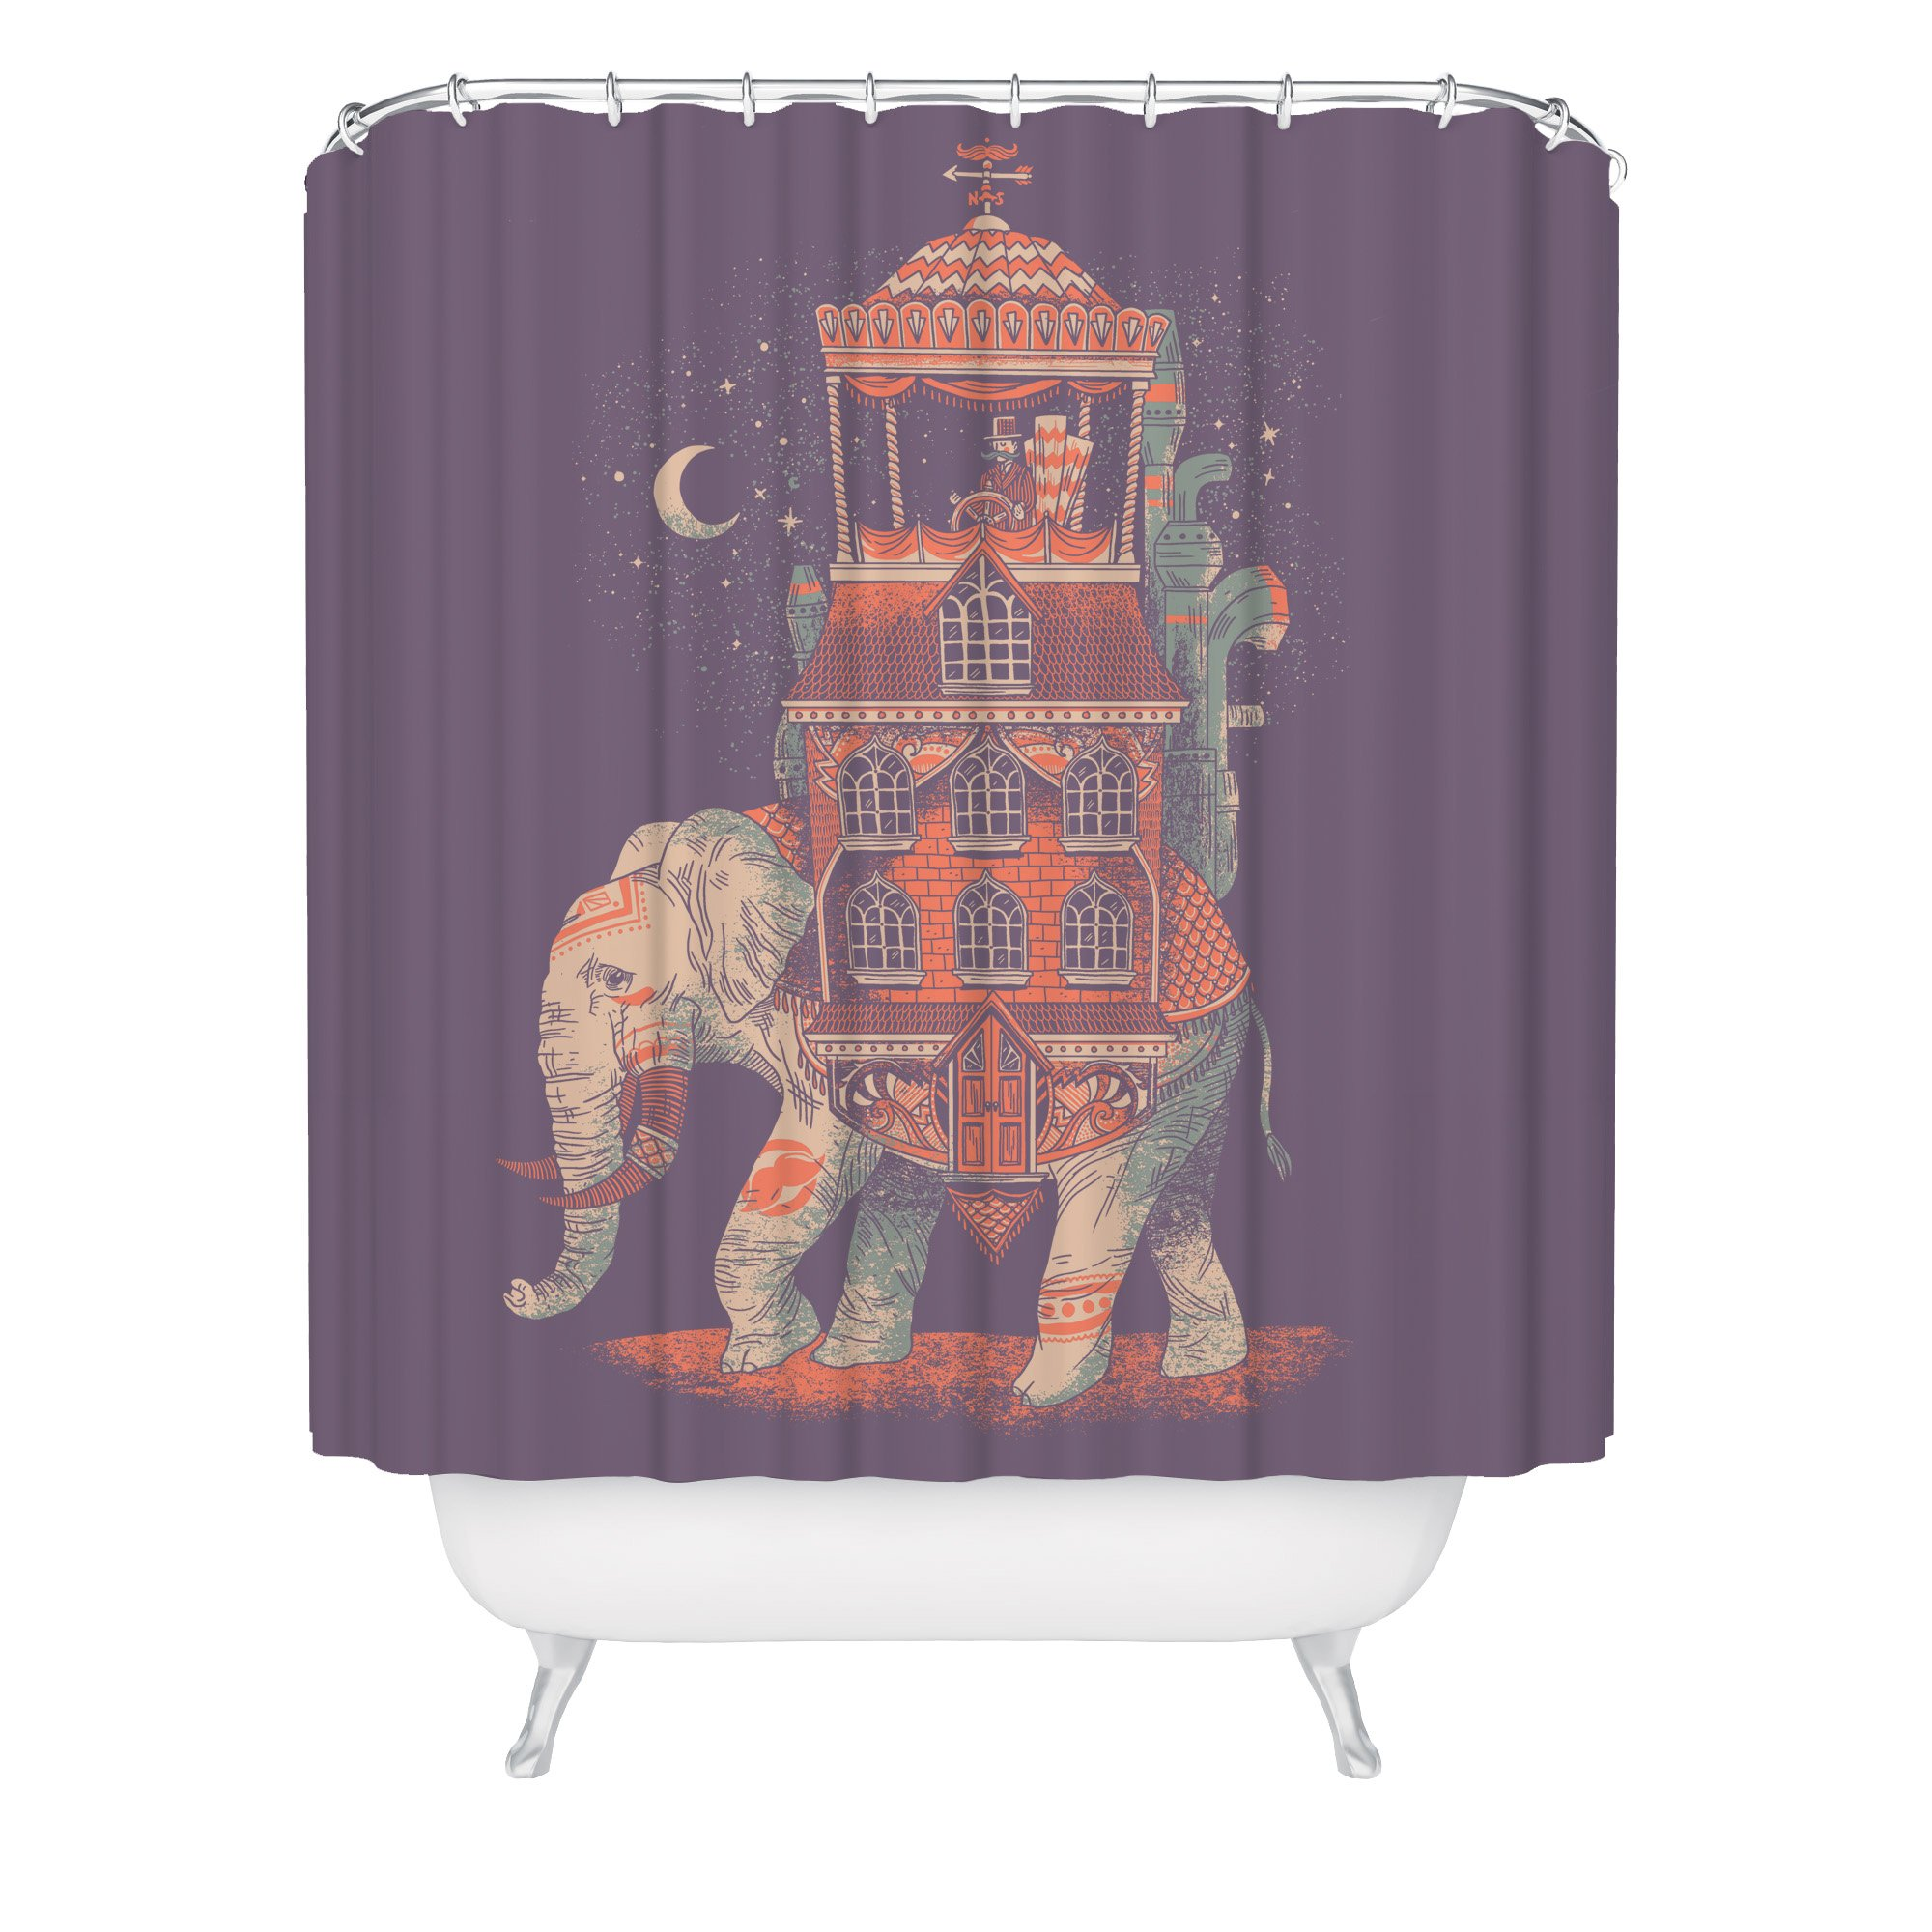 Fuzzy Ink Elephant Shower Curtain Boho Bathroom Decor Indian Theme Shower Curtain Elephant Wet Room Curtain Quirky Chic Curtains Mildew Resistant Fabric Bathroom Décor